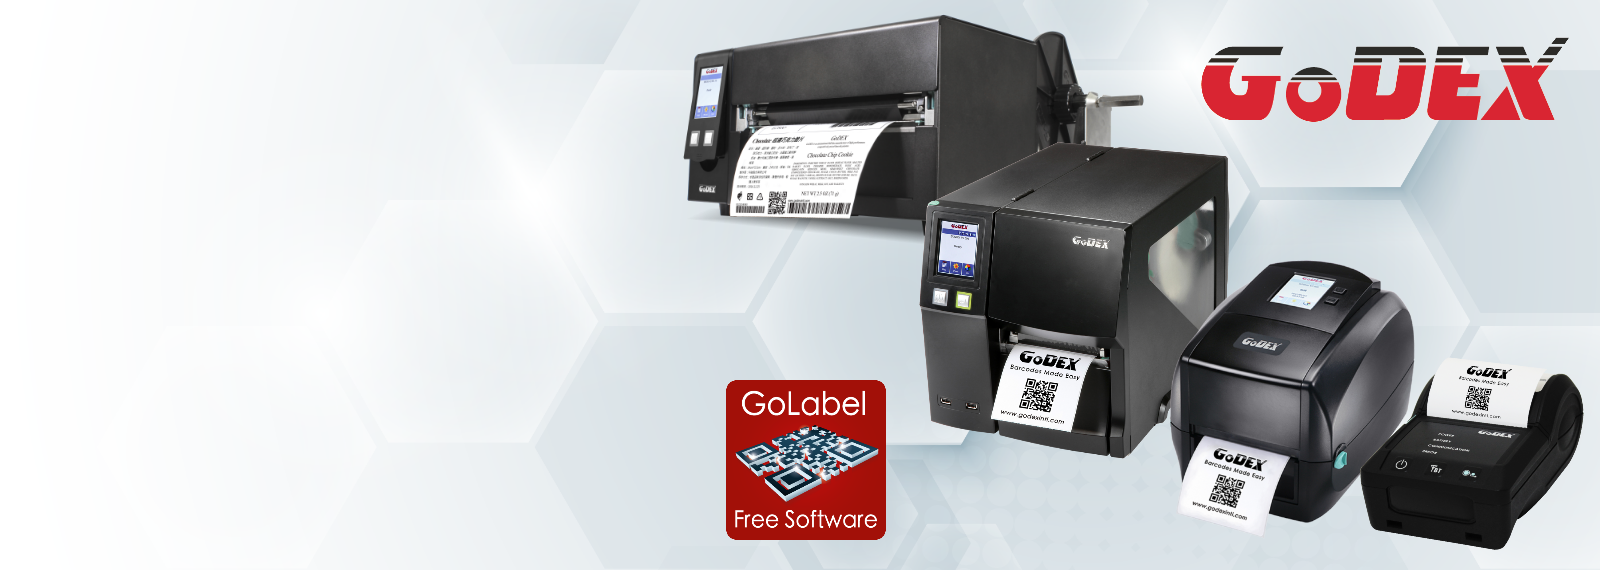 GoDEX label printers